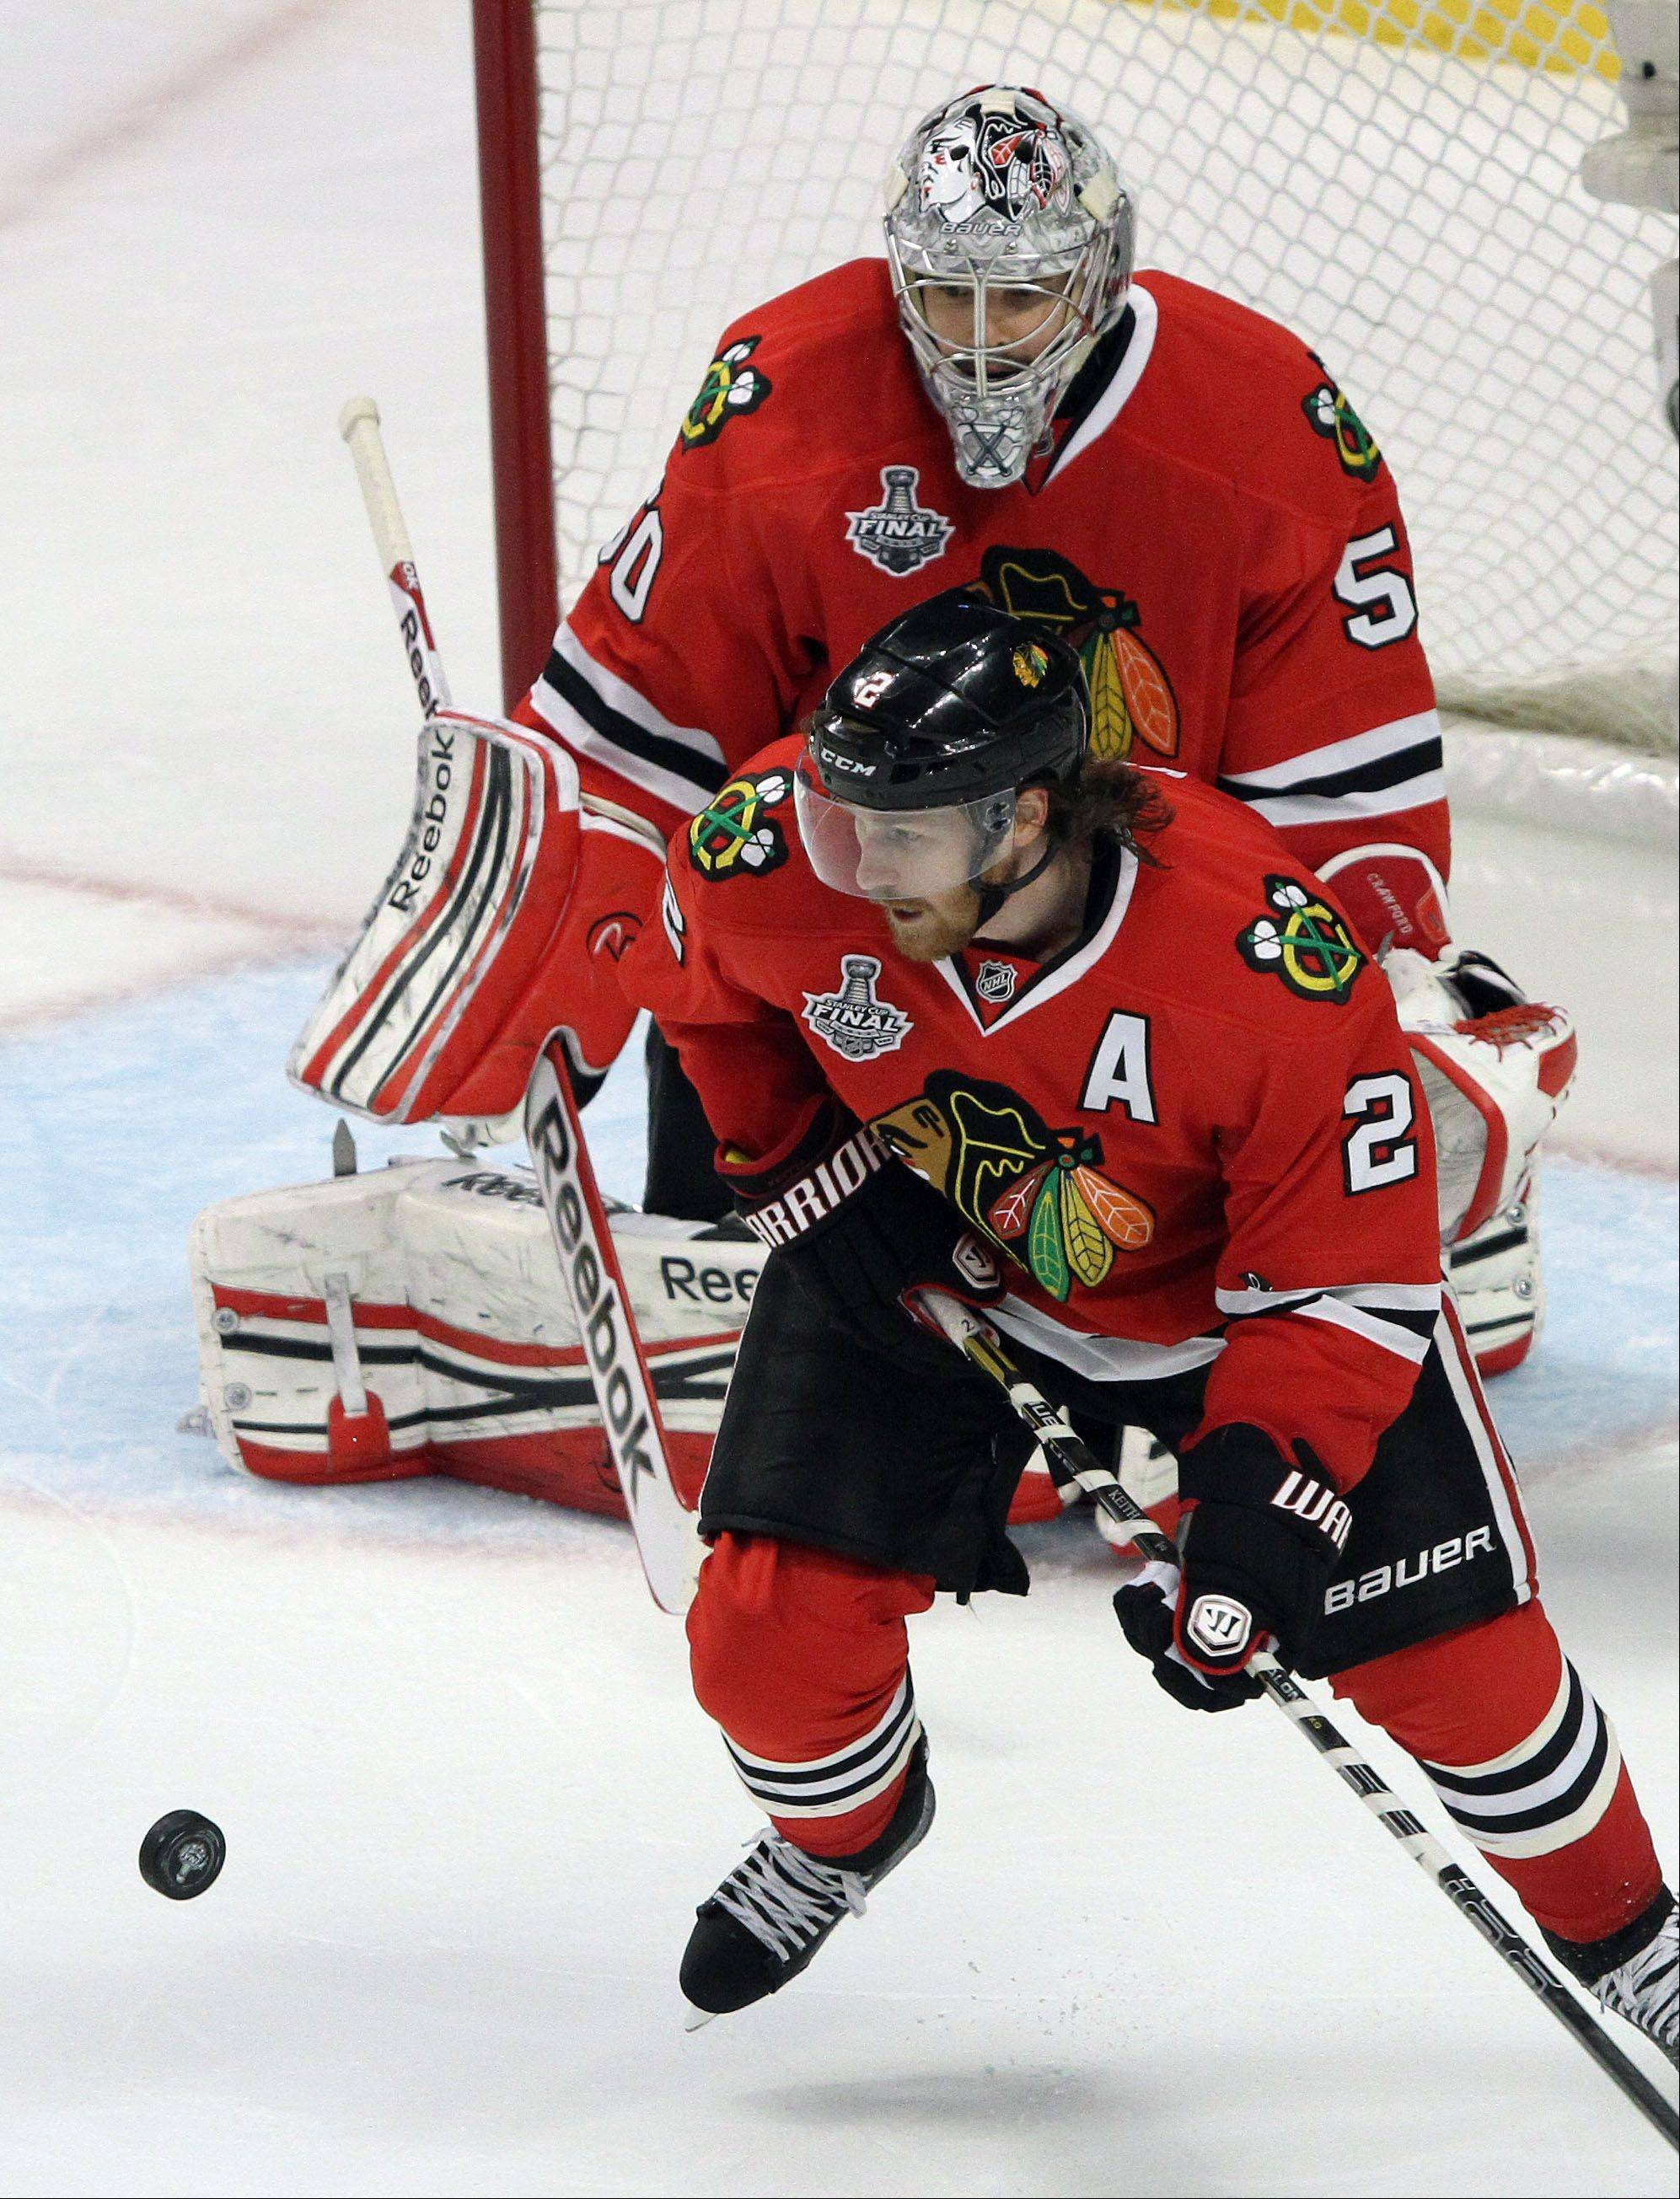 The Blackhawks� Duncan Keith said that the Bruins� penalty killers deserve some credit for holding the Hawks scoreless in 6 power plays during the first two games of the Stanley Cup Final.